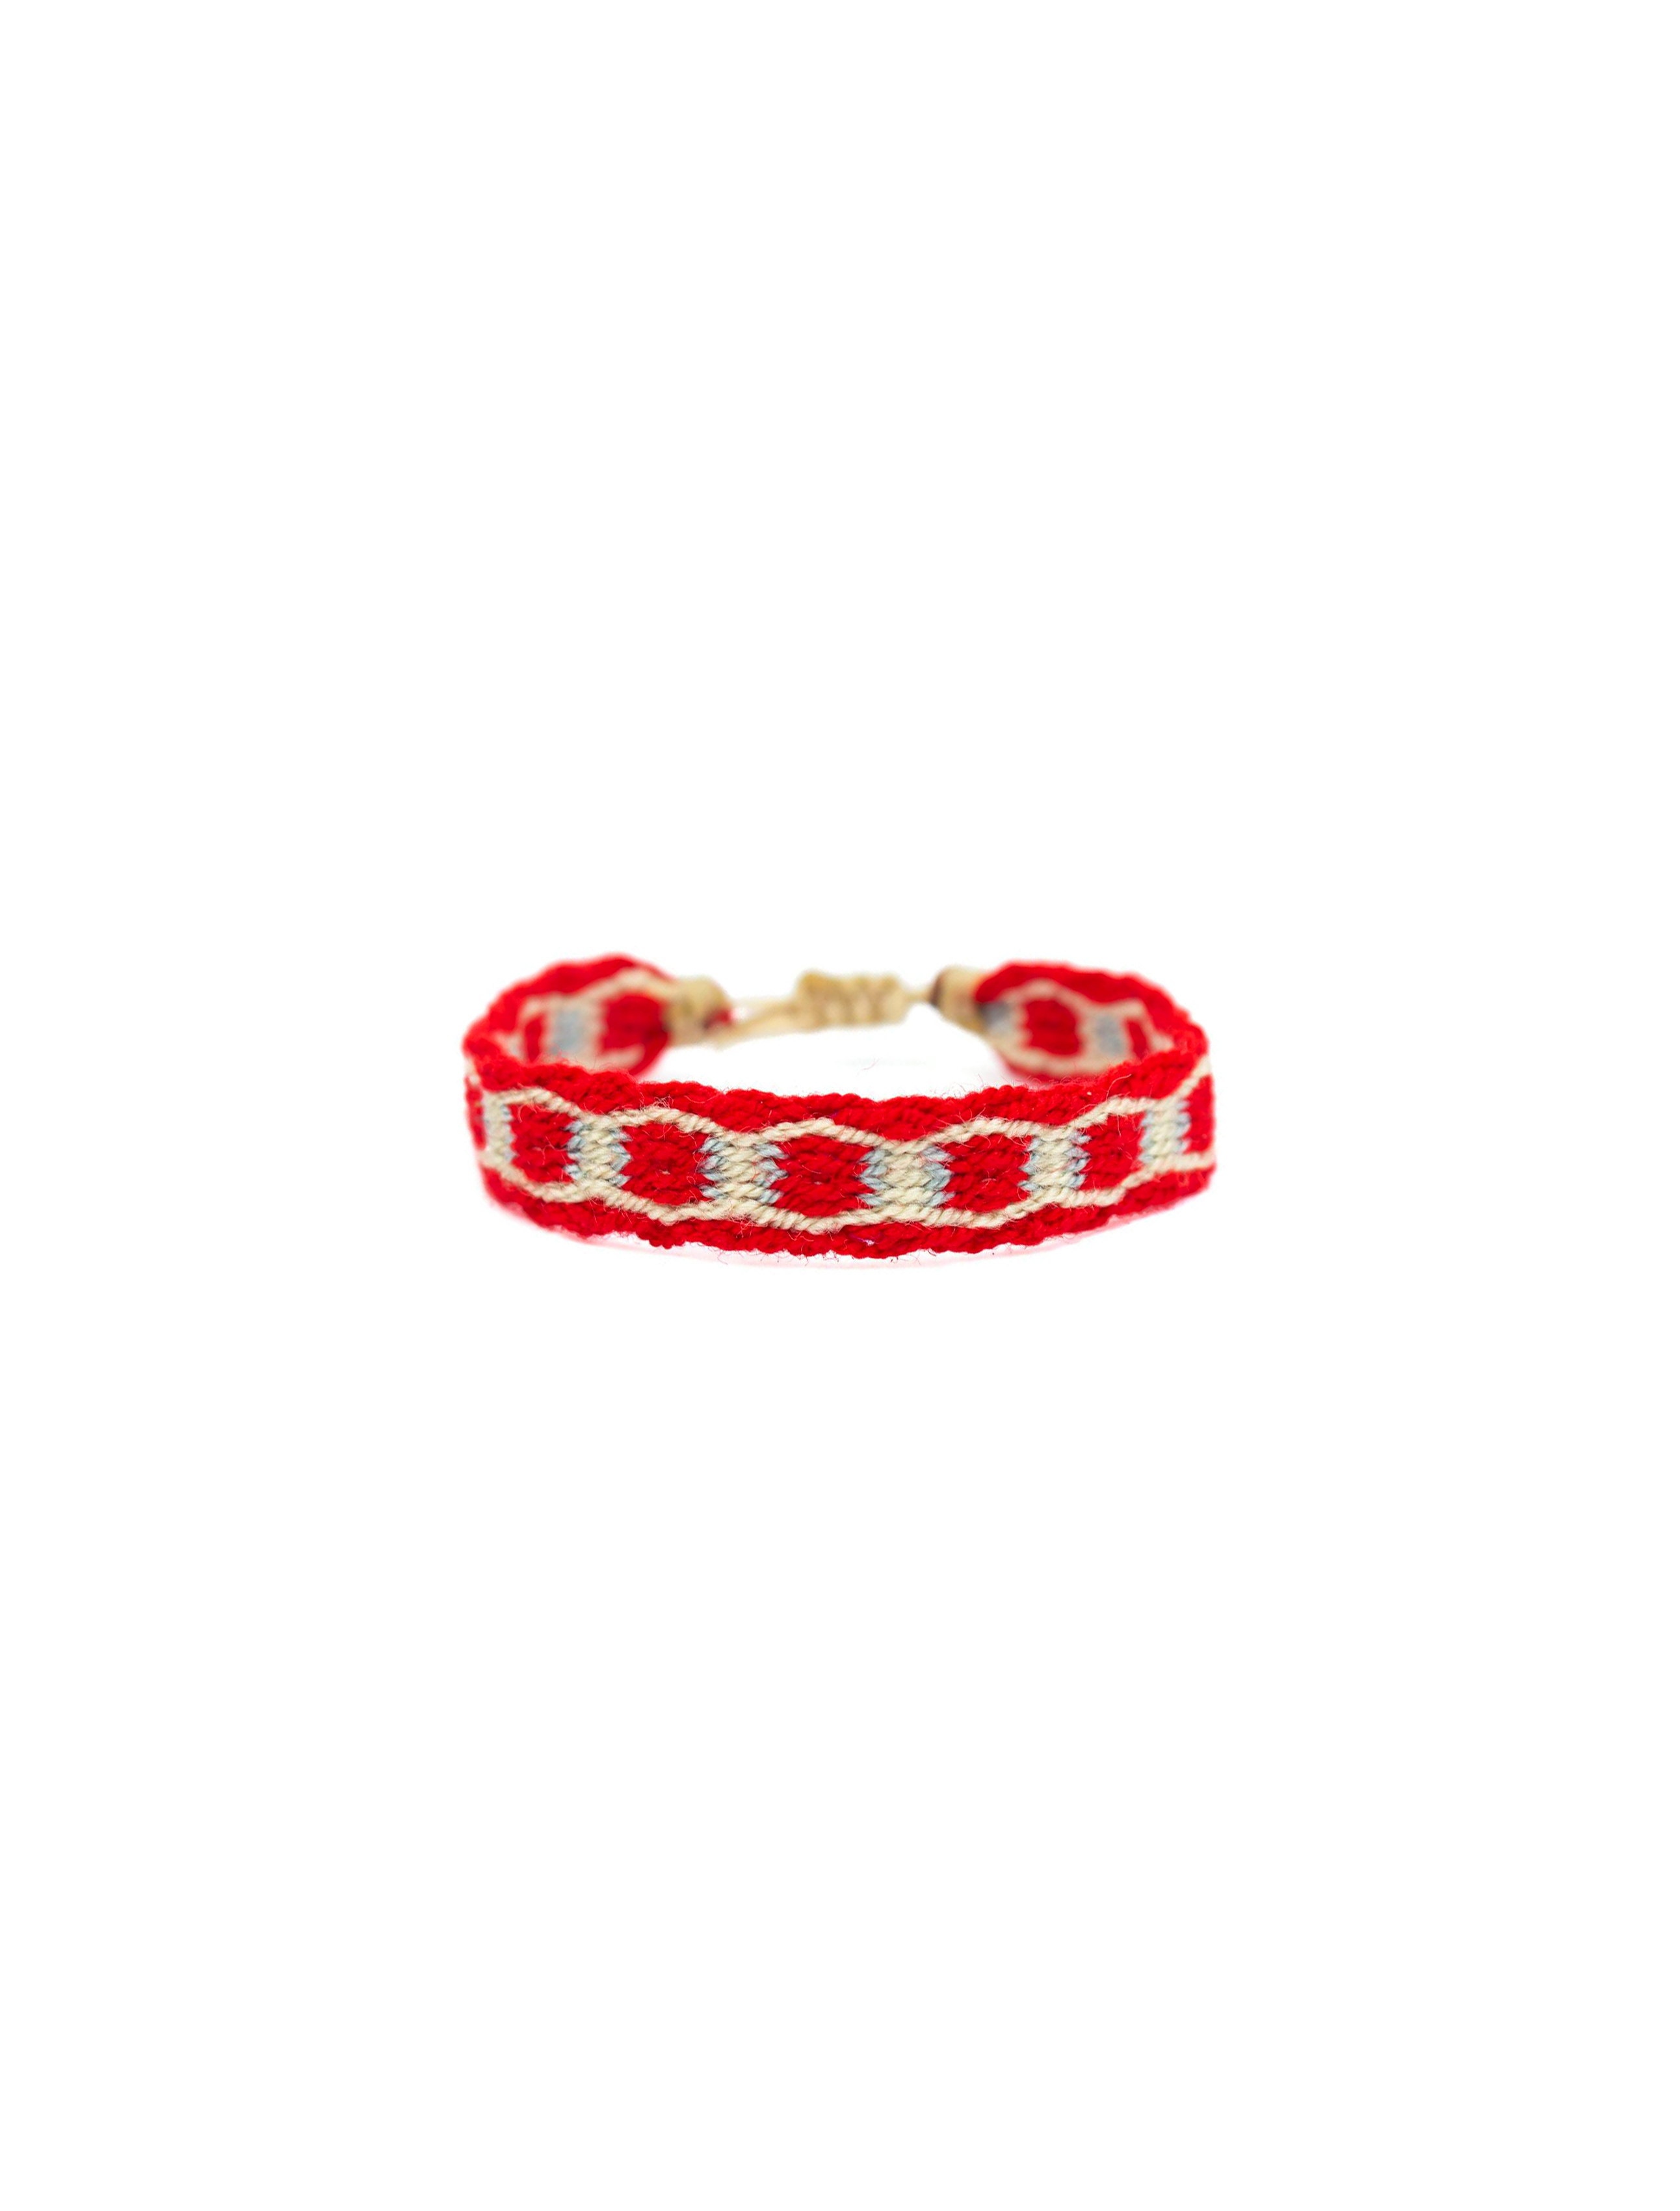 Guanabana Bracciale Bianco Rosso | Wooden Store